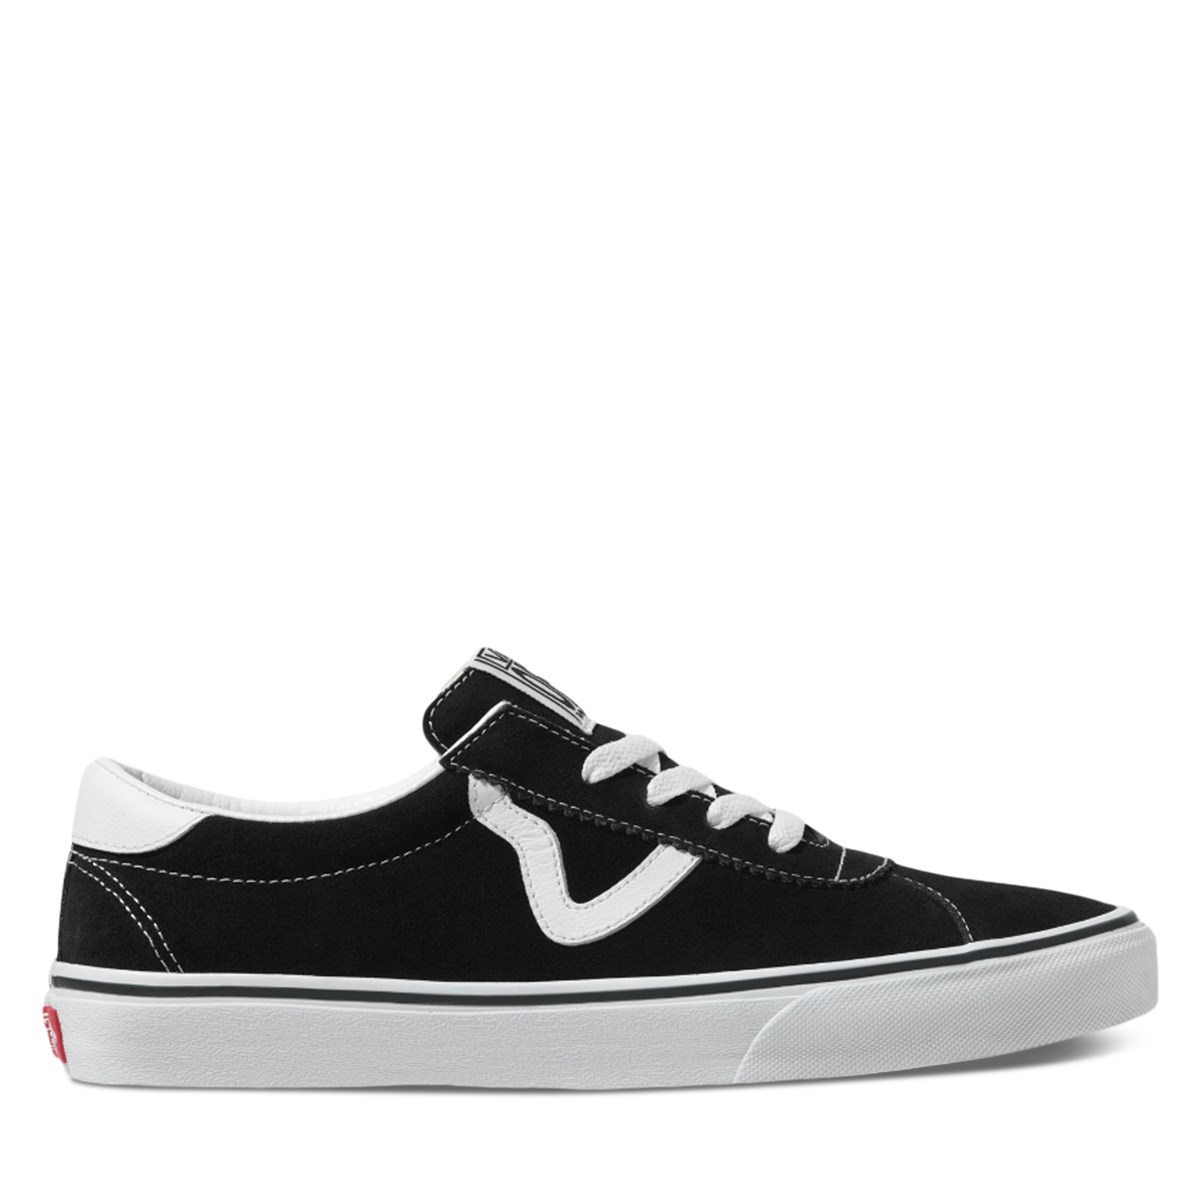 Men's Sport Suede Sneakers in Black